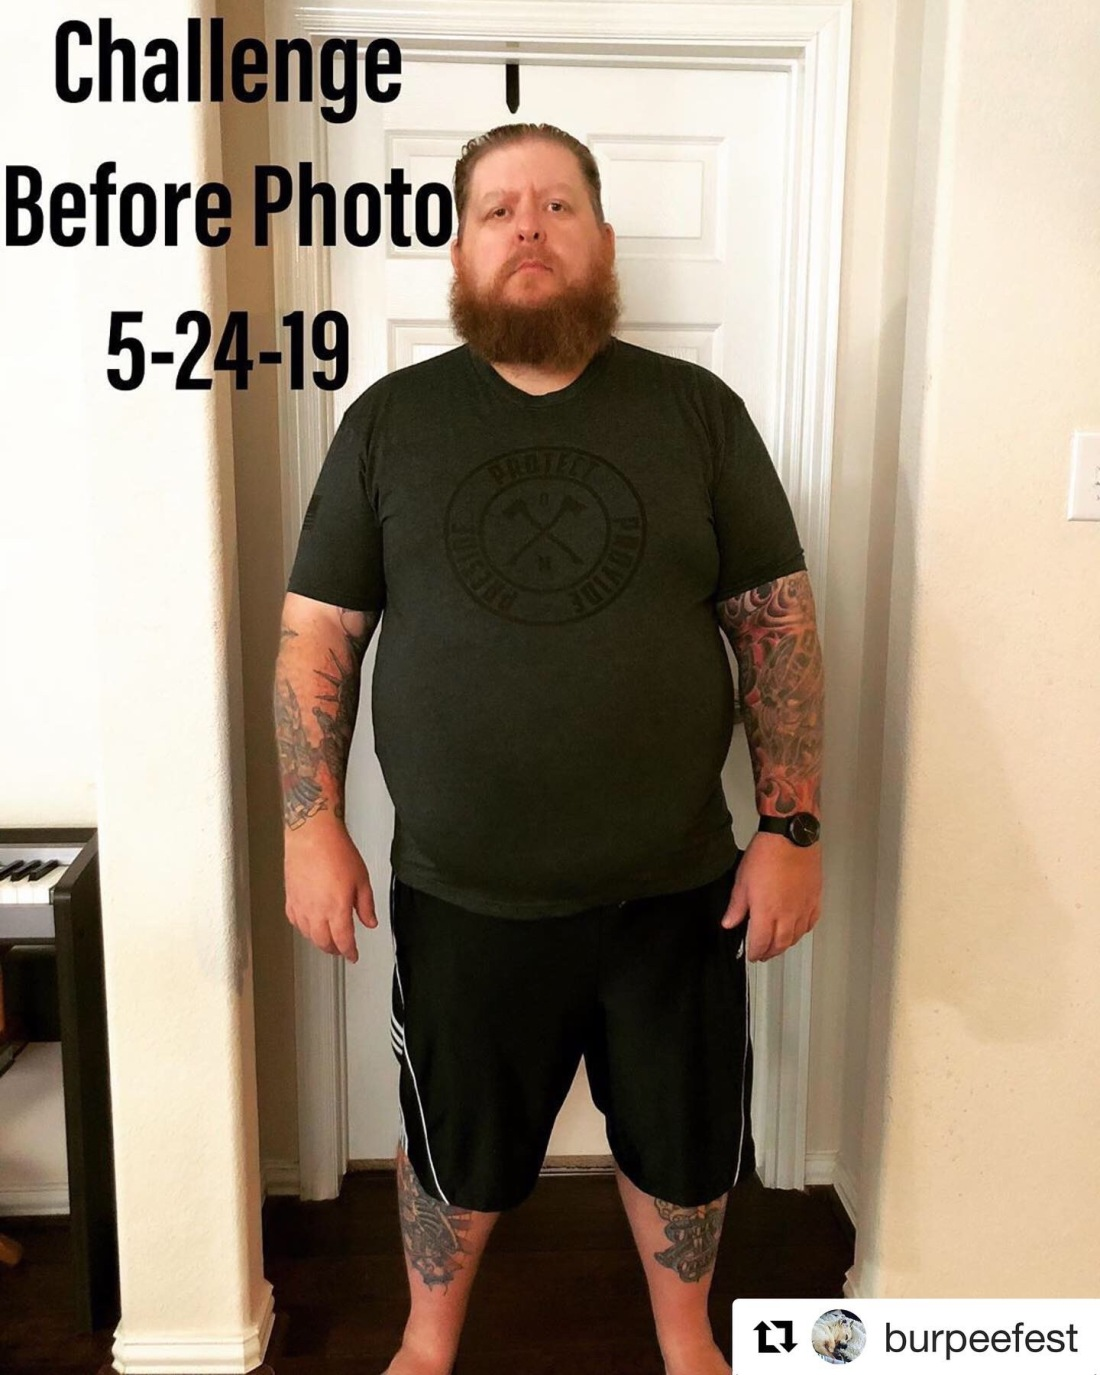 Starting Body Photo_5-24-19